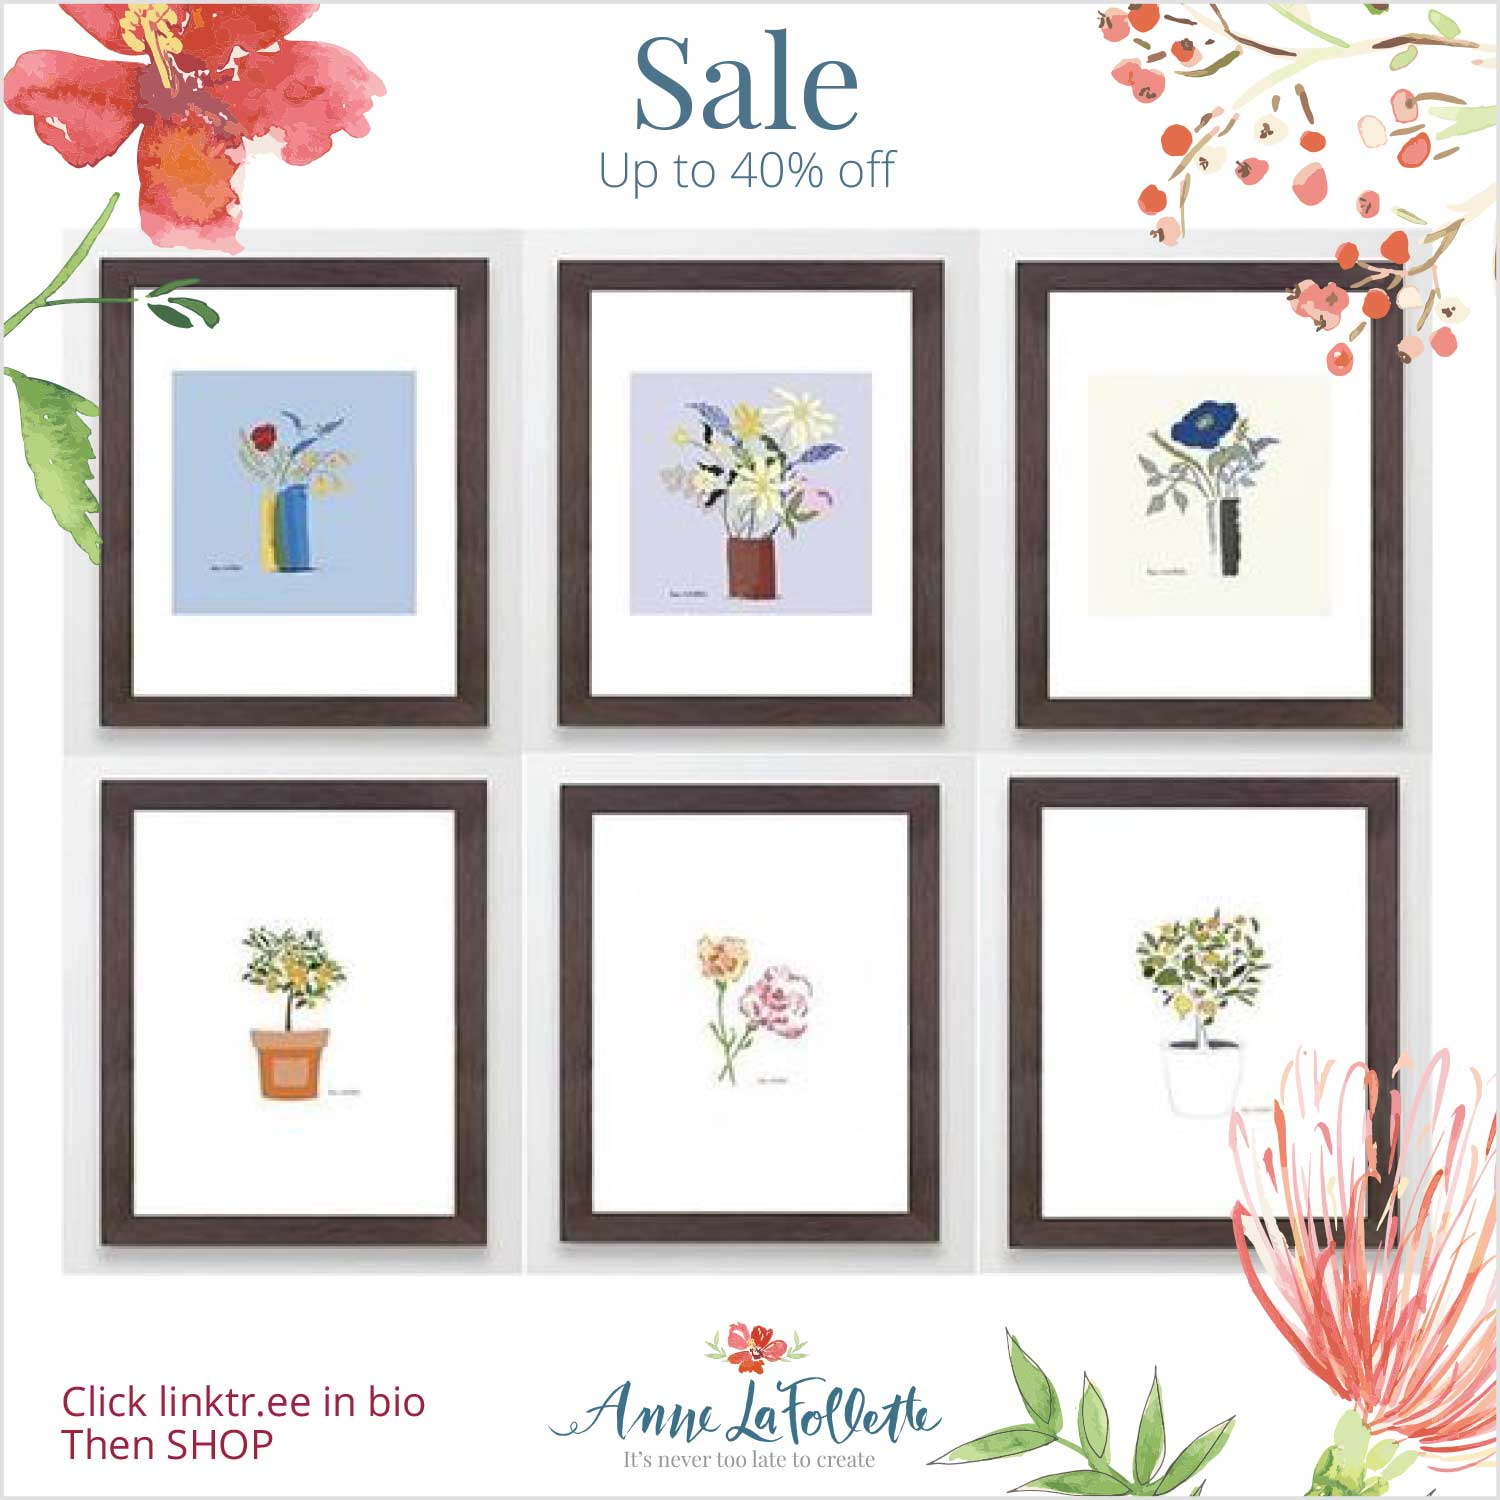 Anne-LaFollette-Art-Sale-Promo.jpg